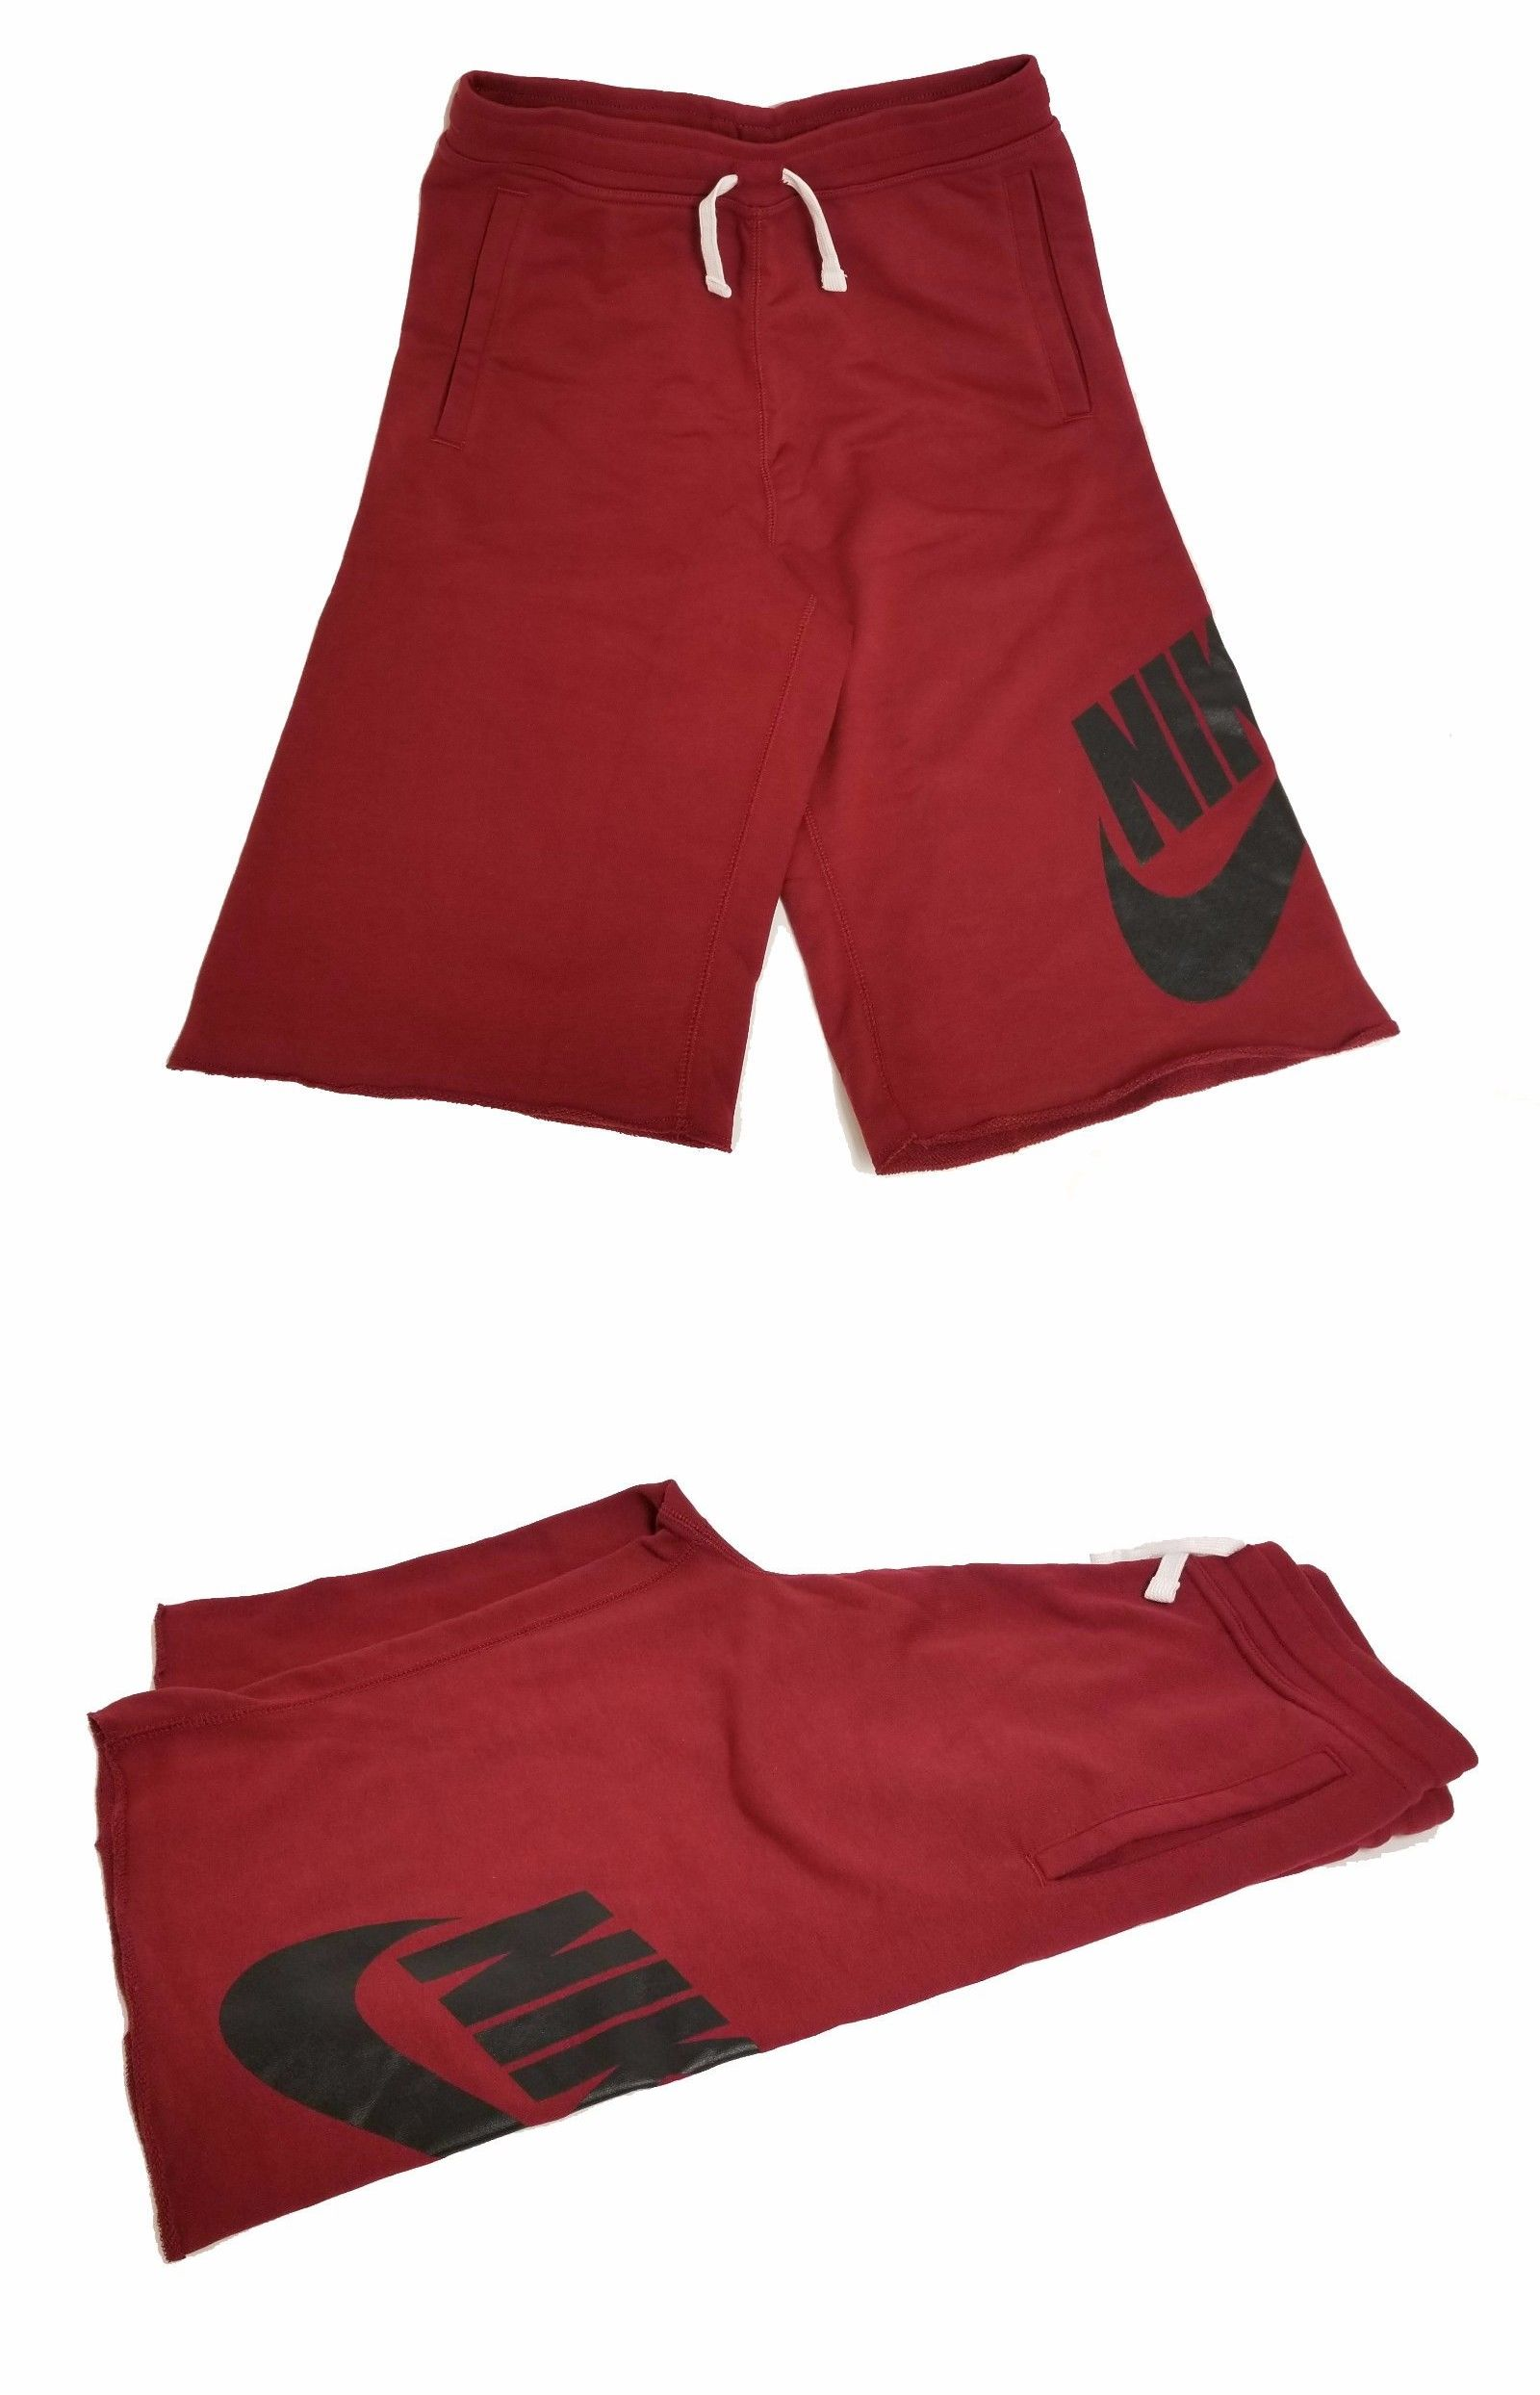 f478672a80 Shorts 175655: Nike Big Kids Sportswear French Terry Alumni Shorts Team Red  728206-678 B -> BUY IT NOW ONLY: $27.99 on #eBay #shorts #sportswear #french  ...